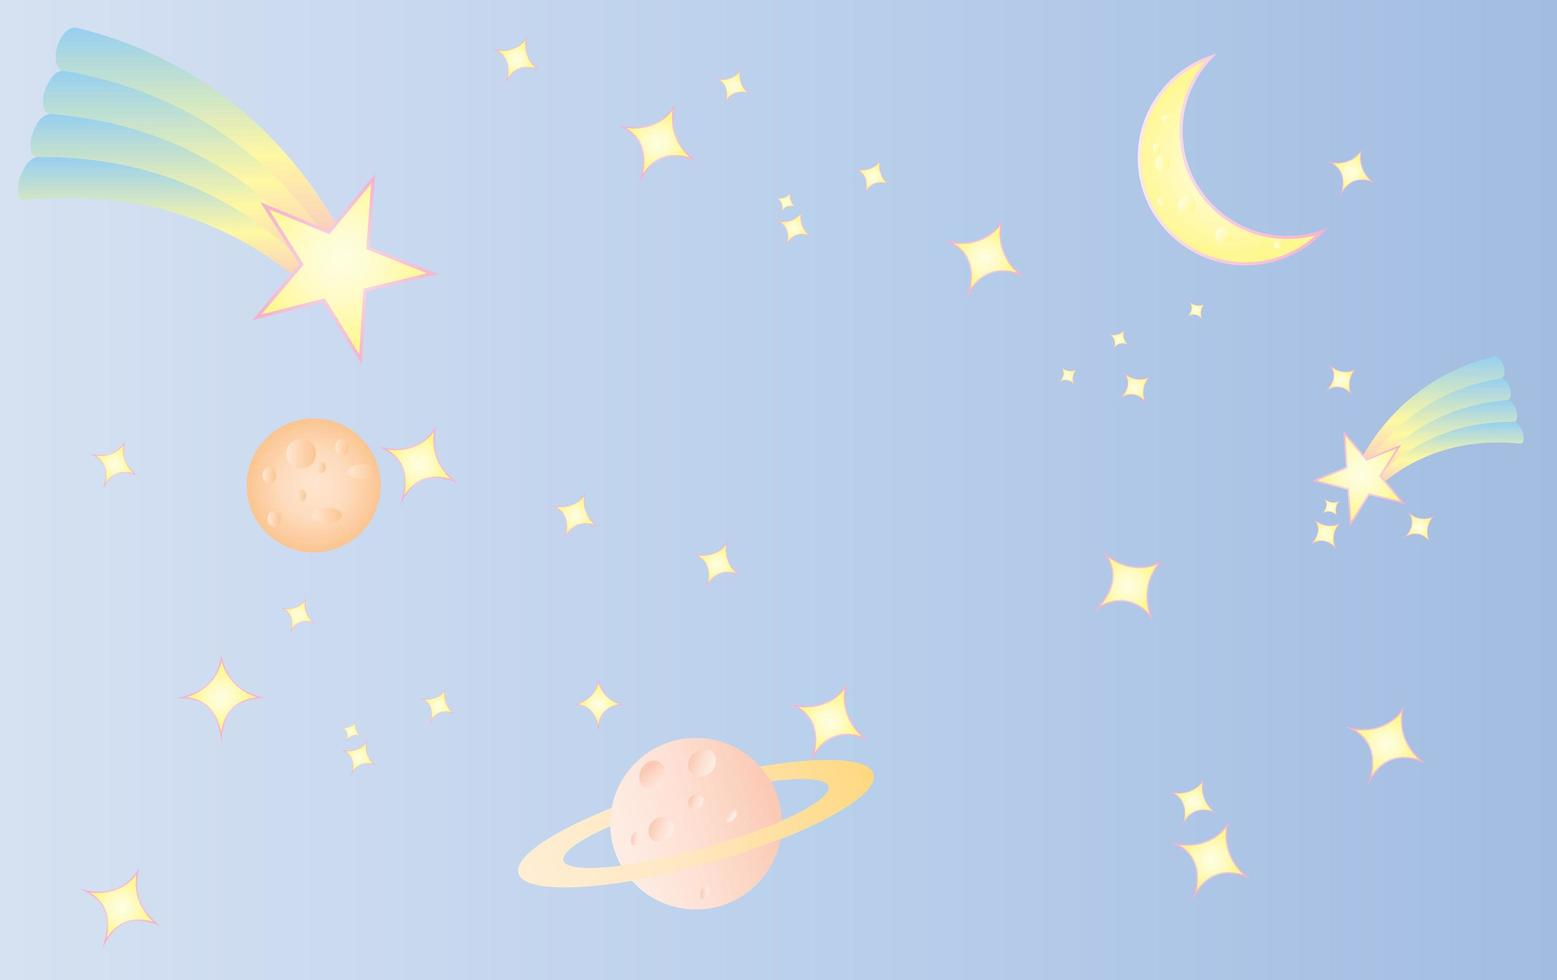 Space and cosmos sweet cute pastel pink background vector